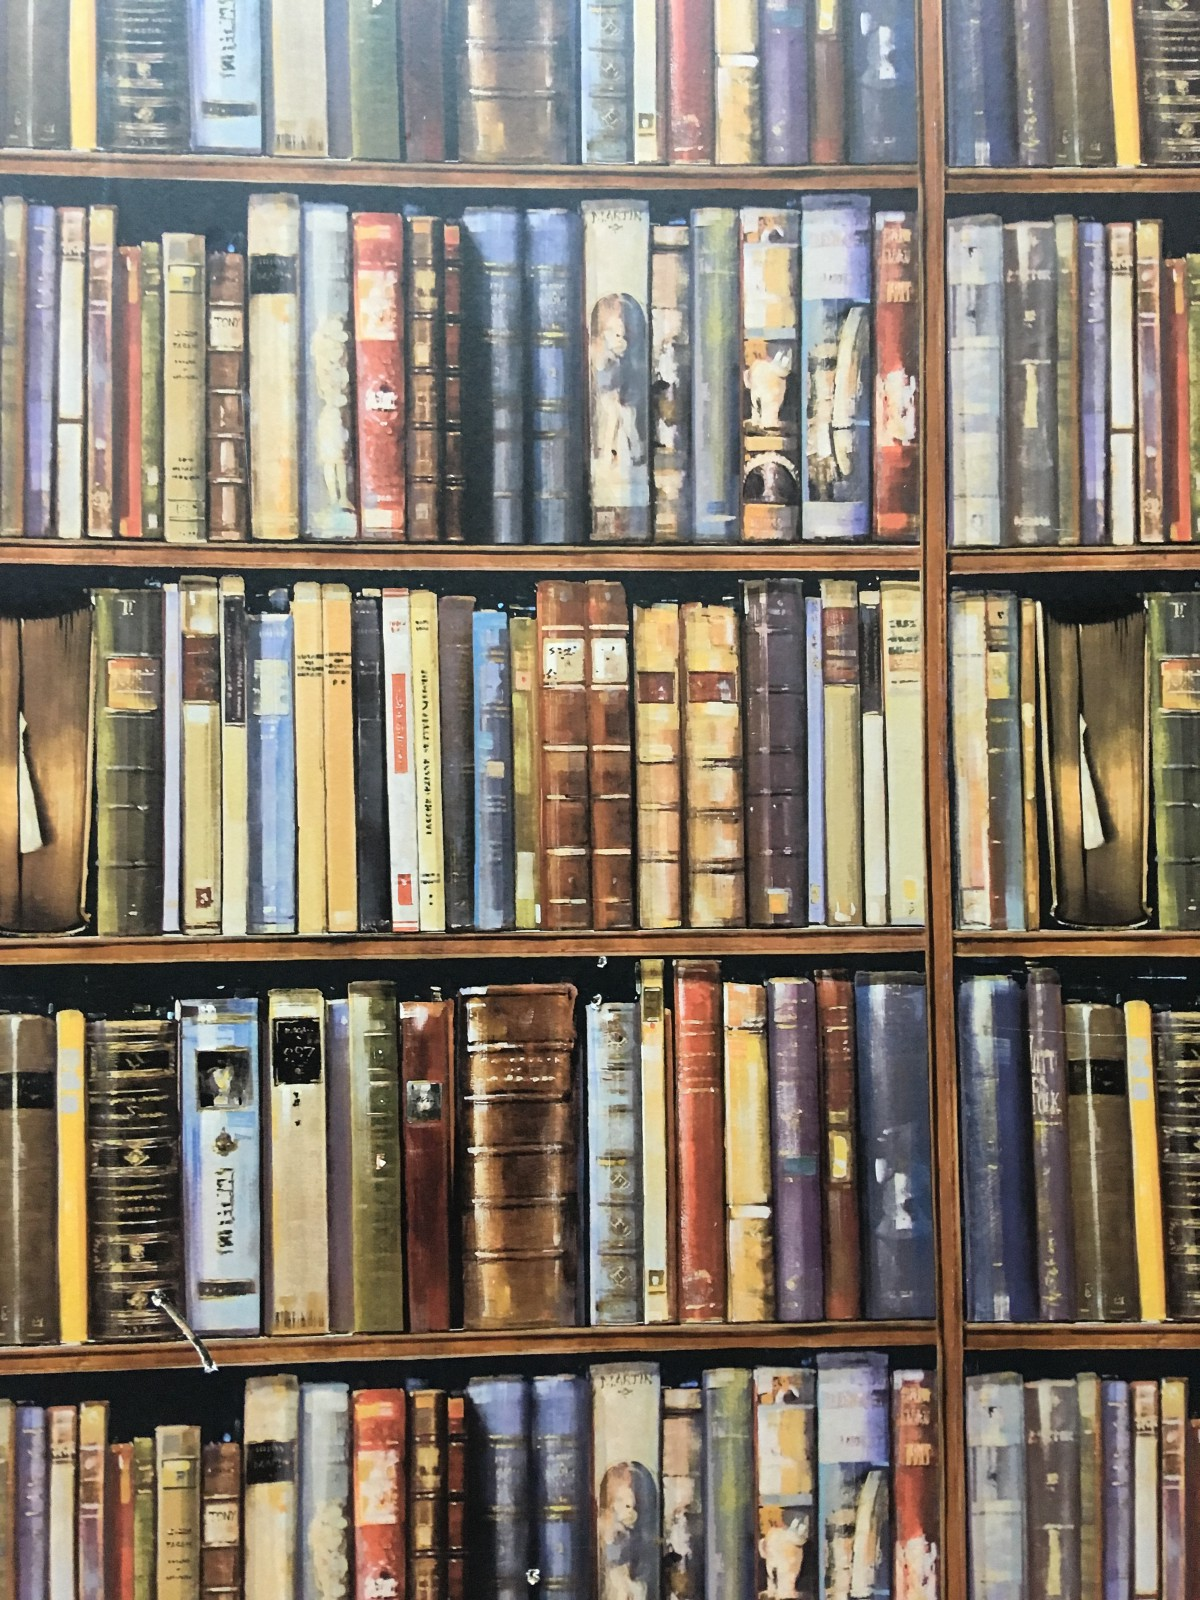 Bibliography — Books I read in 2017